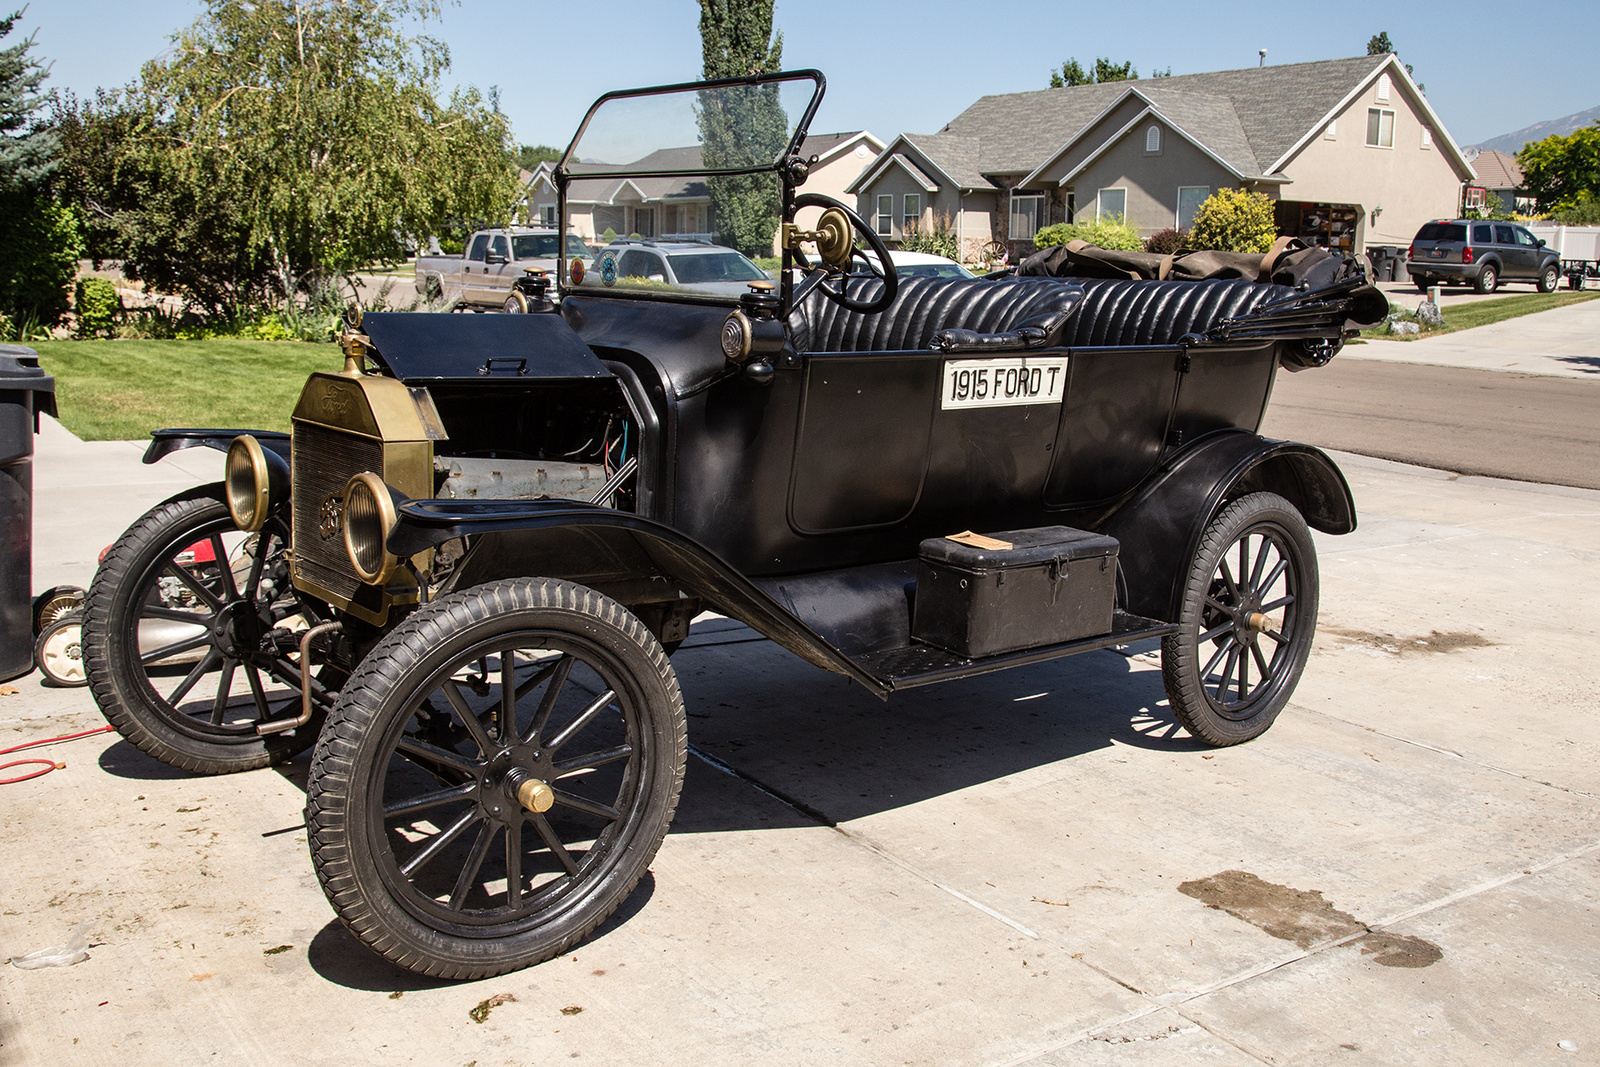 Hyundai Of Bedford >> 1915 Ford Model T - Overview - CarGurus